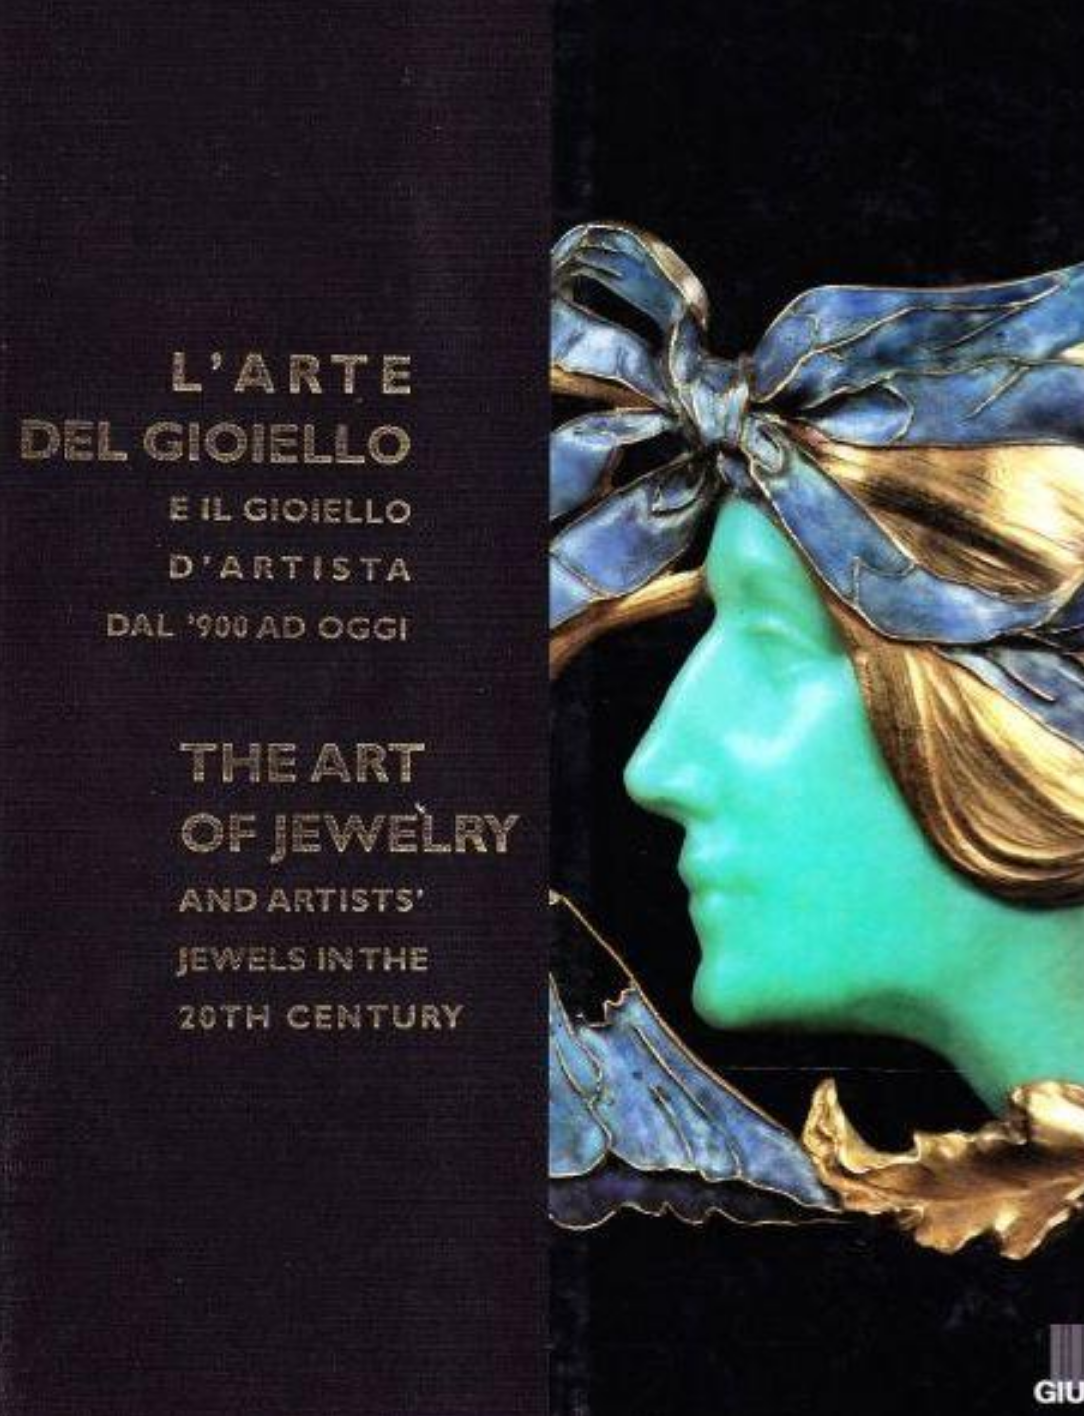 The Art of Jewelry and the Artist's Jewels in the 20th Century